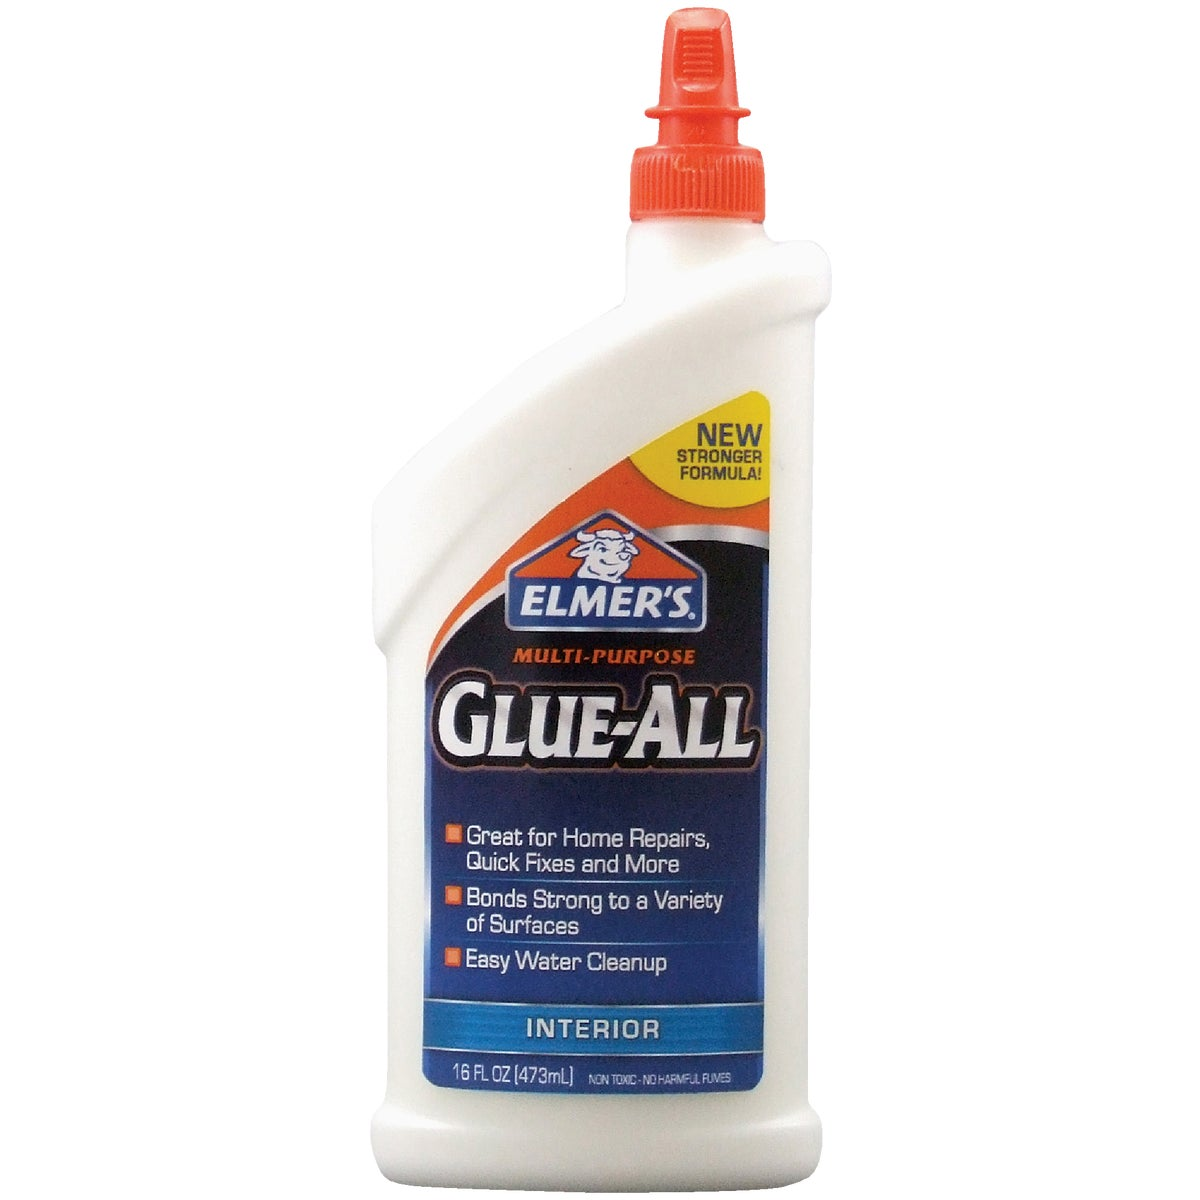 16OZ GLUE-ALL GLUE - E3830 by Elmers Products Inc